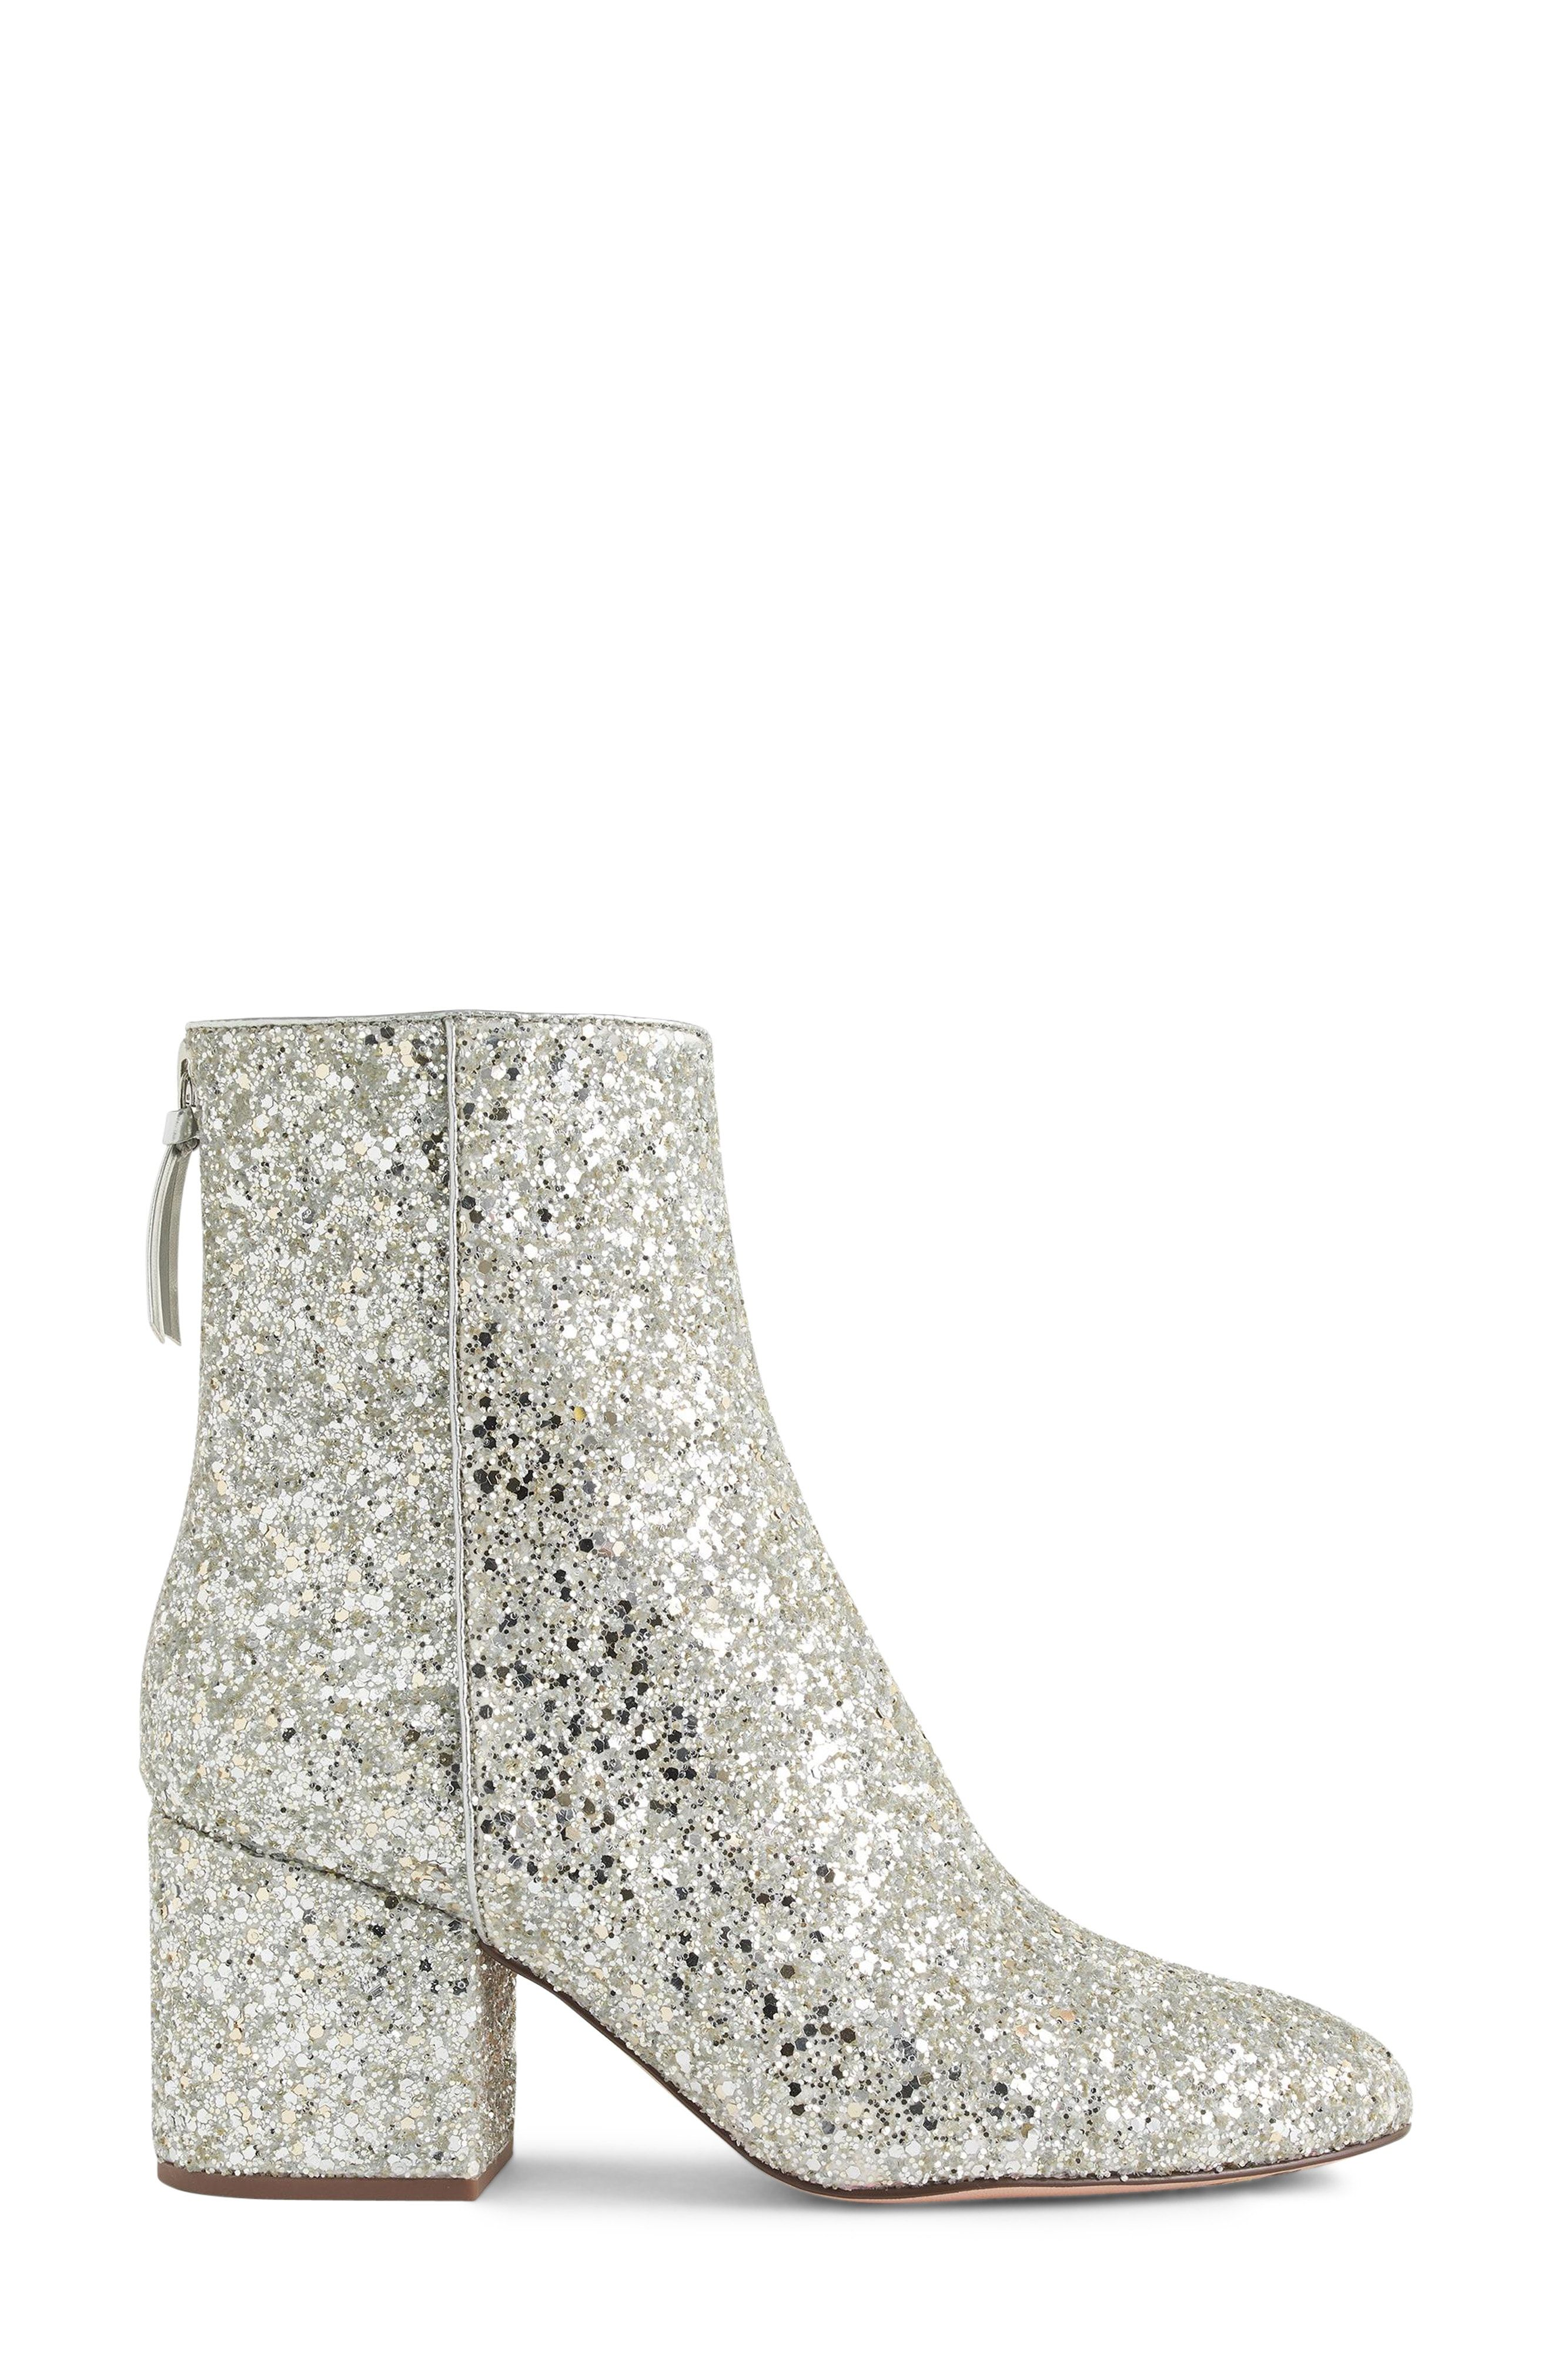 2ef1ba822 Circus by Sam Edelman + Kensley Extreme Tread Suede Ankle Boot